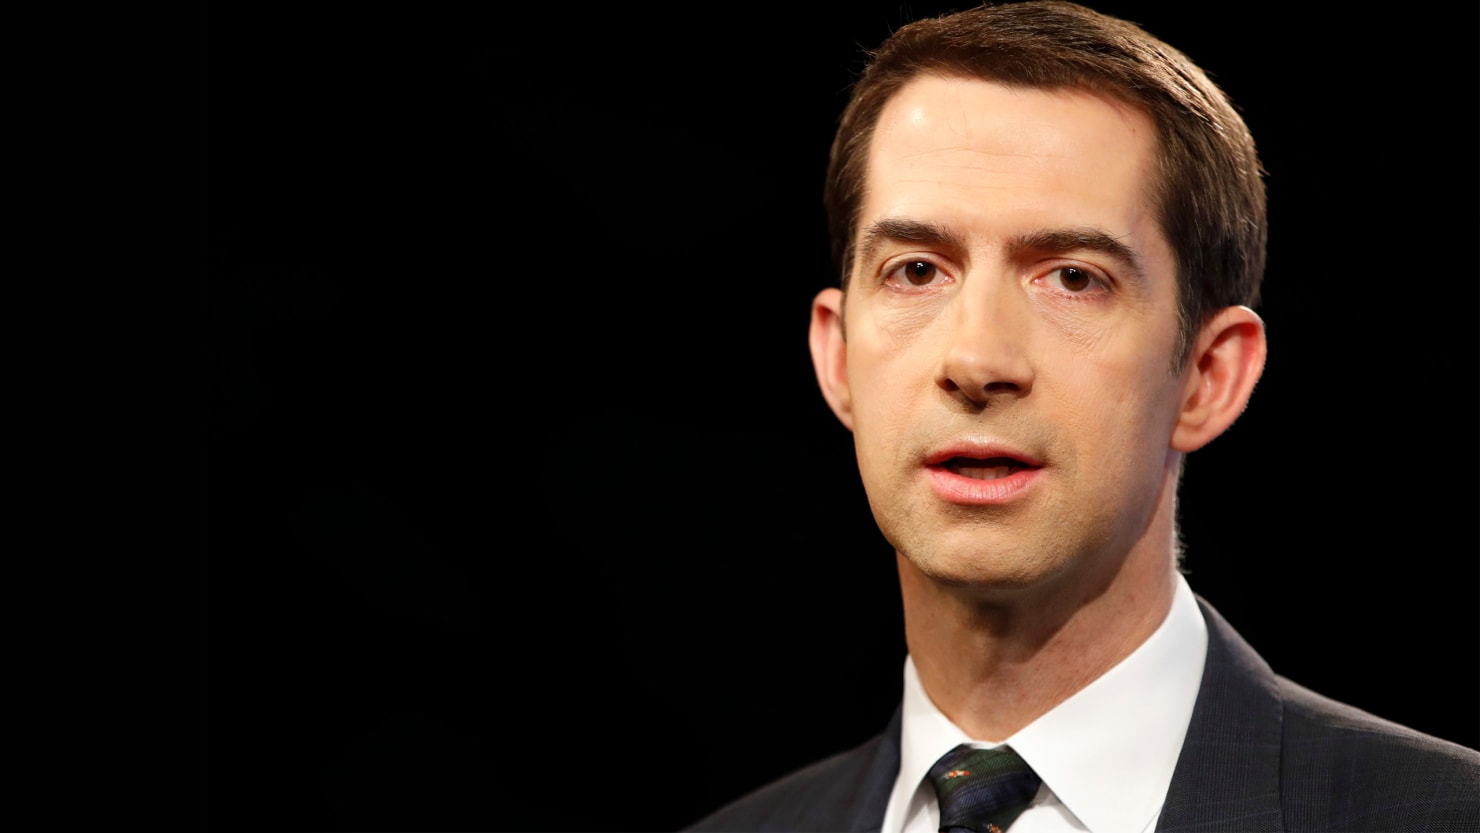 Tom Cotton Pulls Out a Shank in Prison Reform Debate